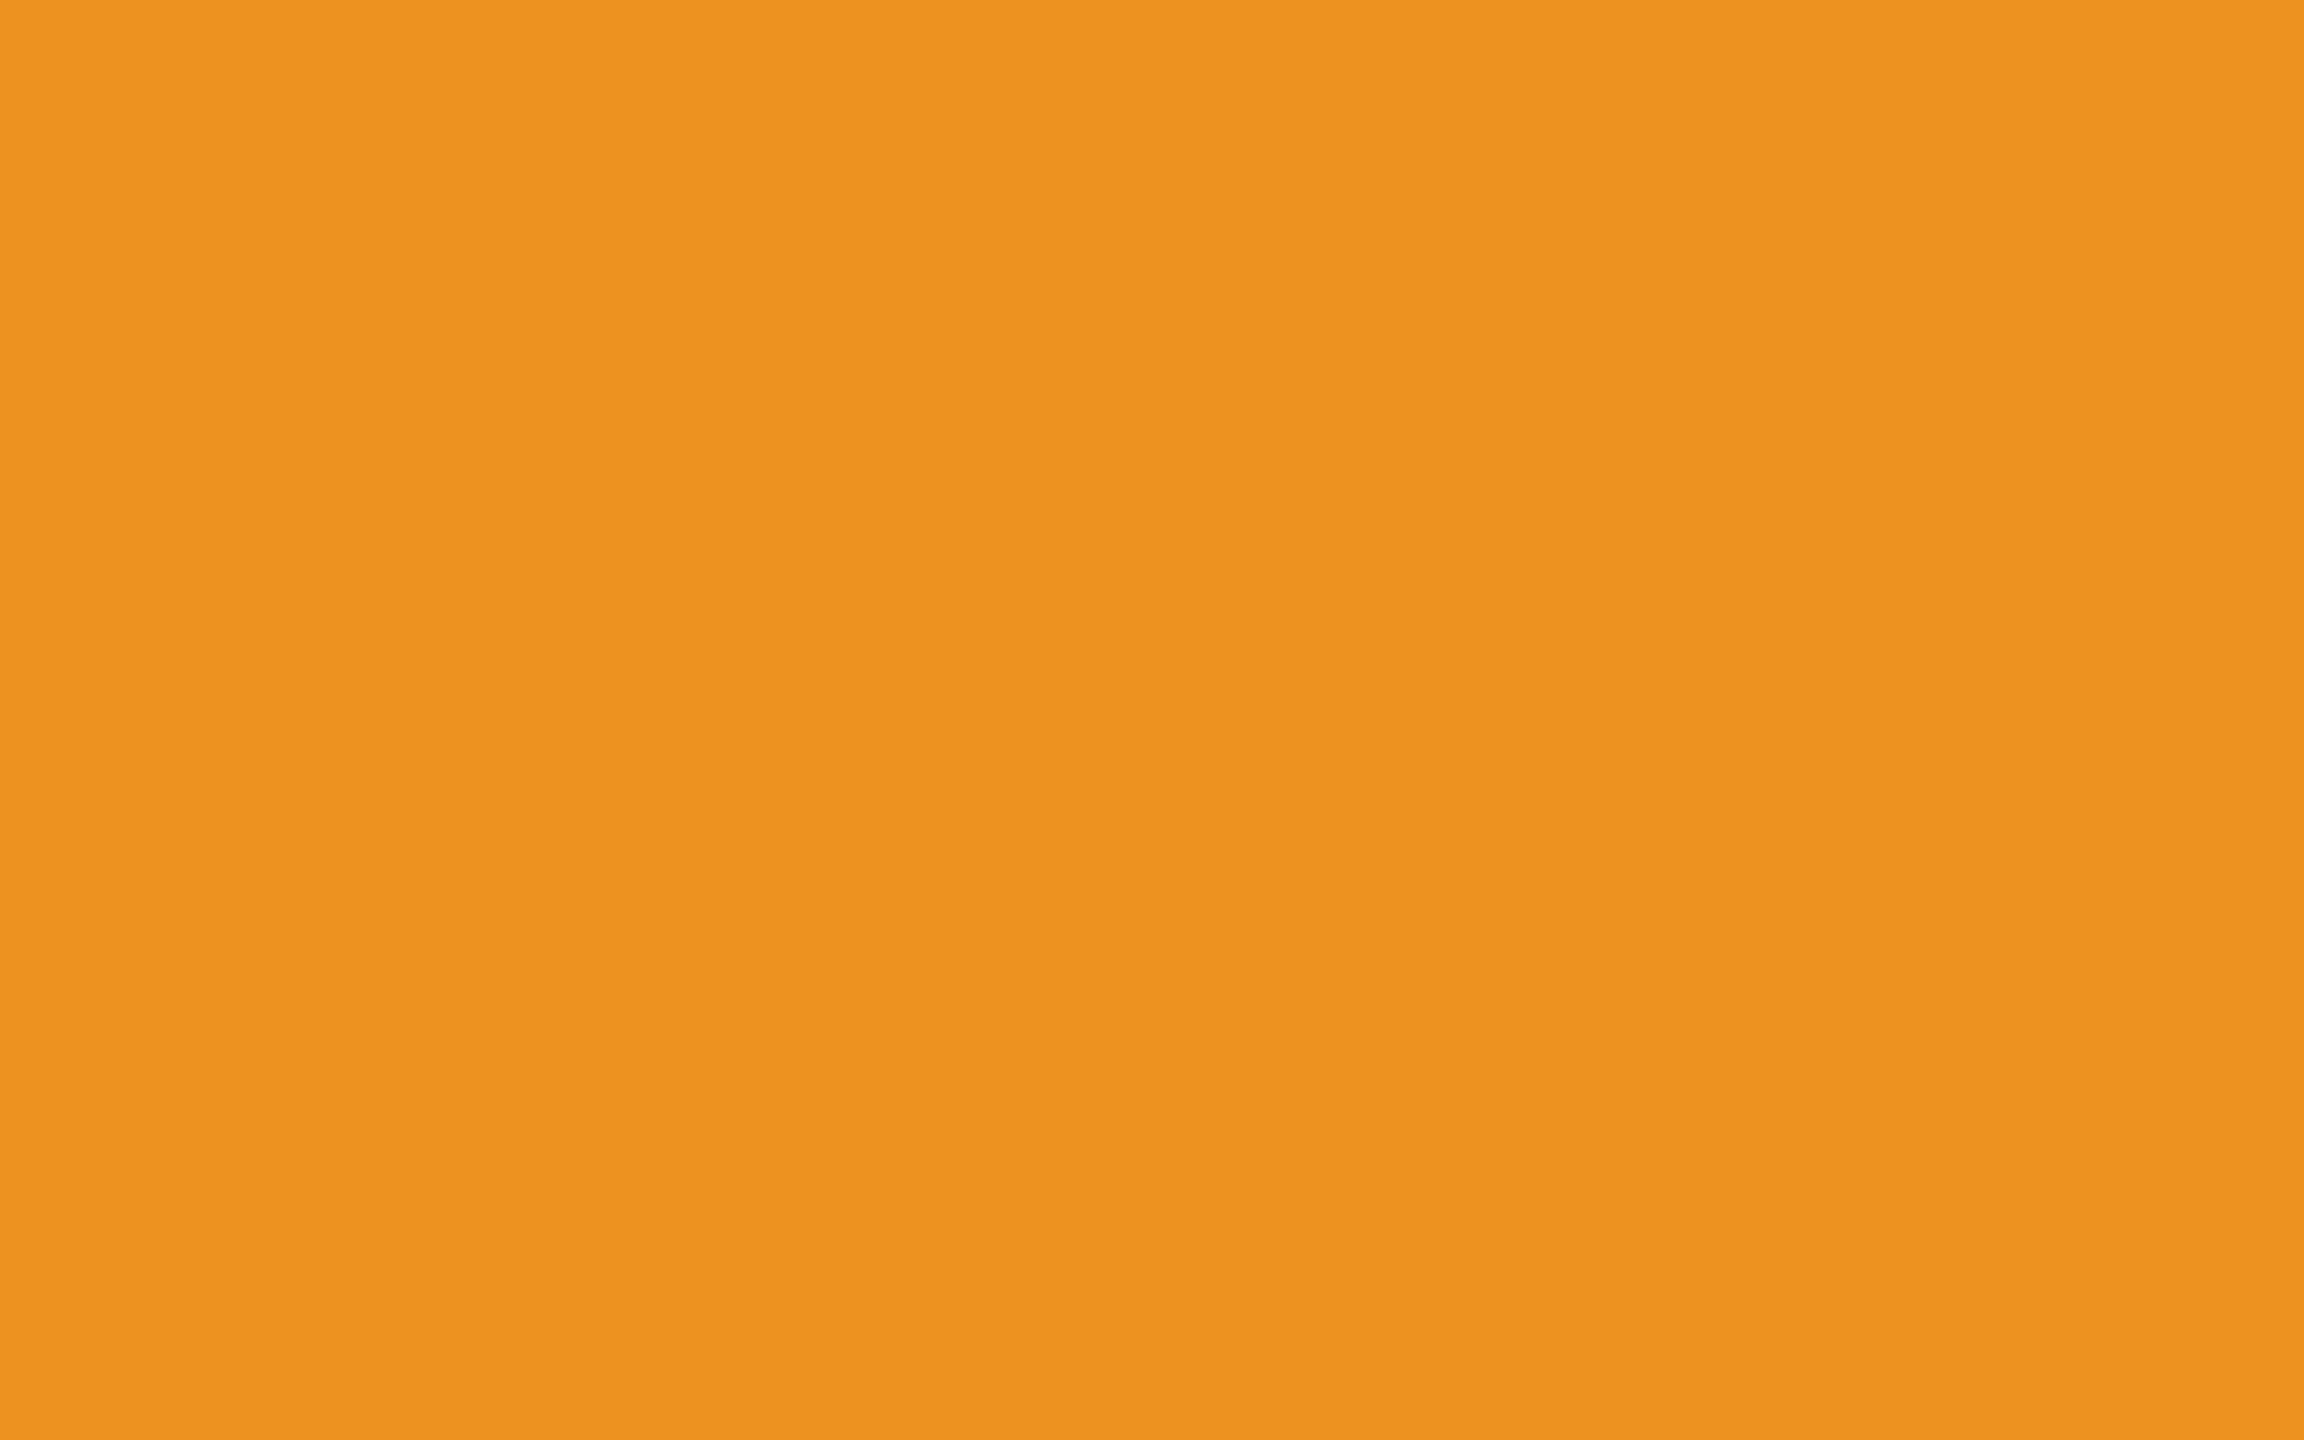 2304x1440 Carrot Orange Solid Color Background